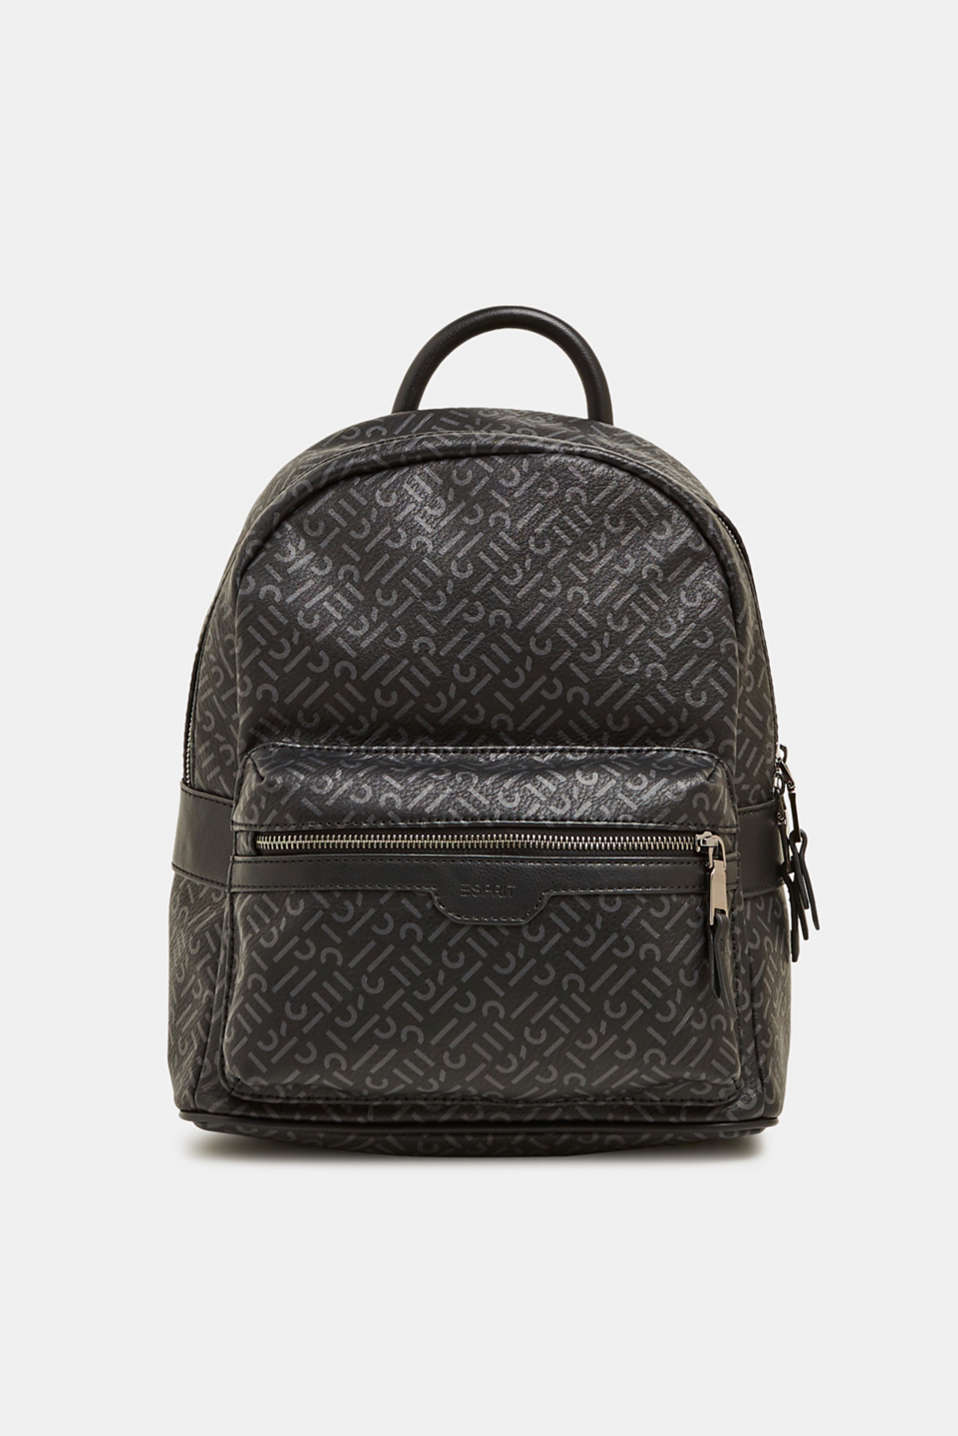 Esprit - Monogram rucksack made of faux leather